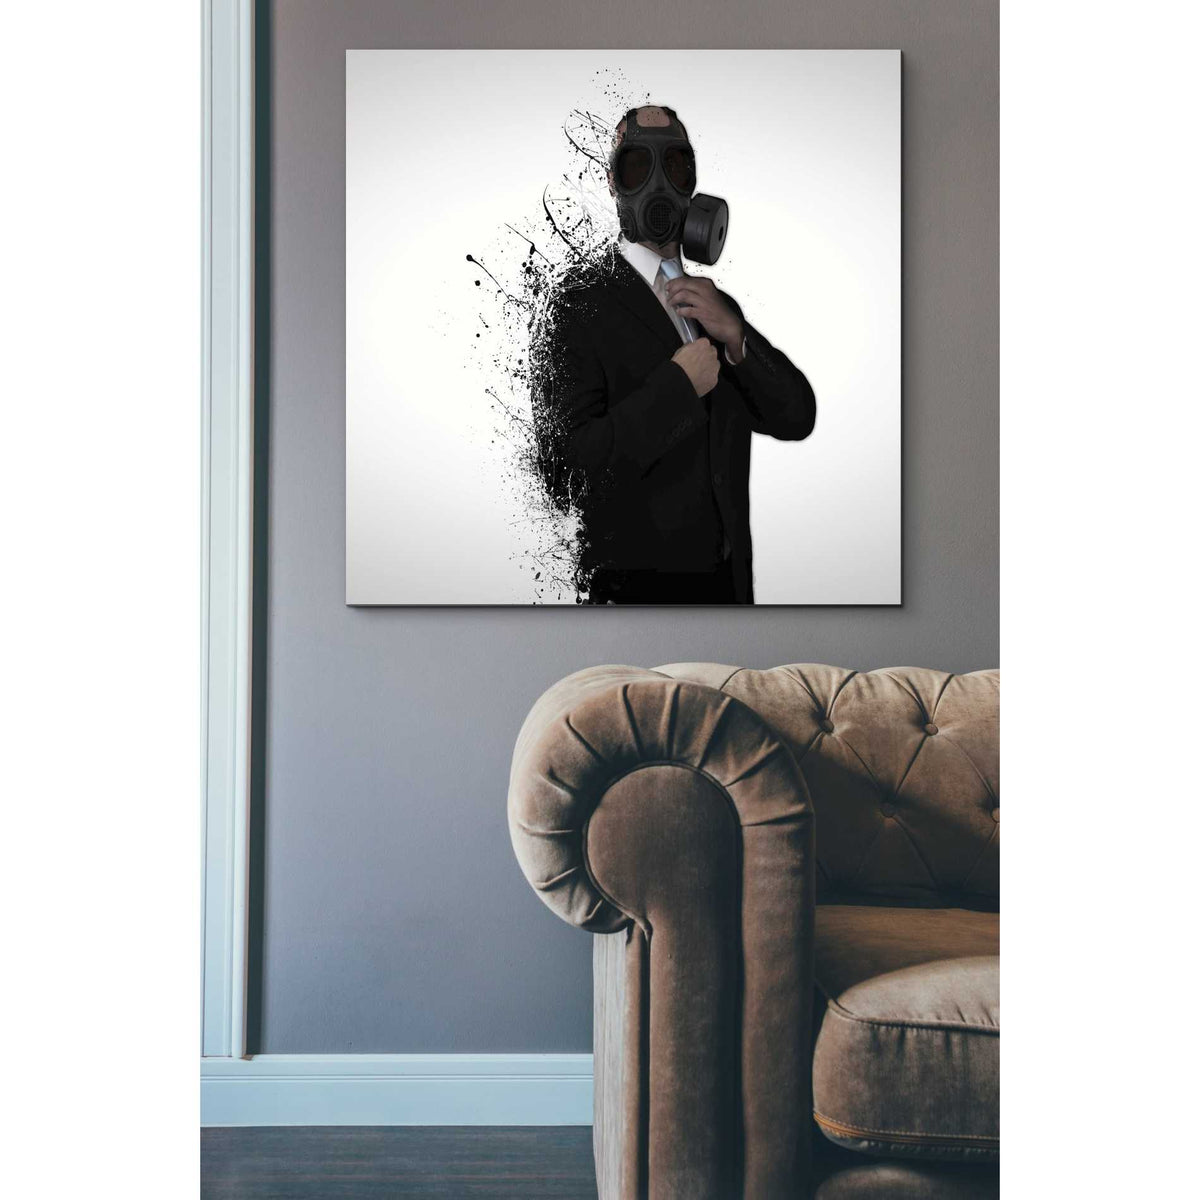 Cortesi Home 'Dissolution of Man' by Nicklas Gustafsson, Canvas Wall Art,37 x 37